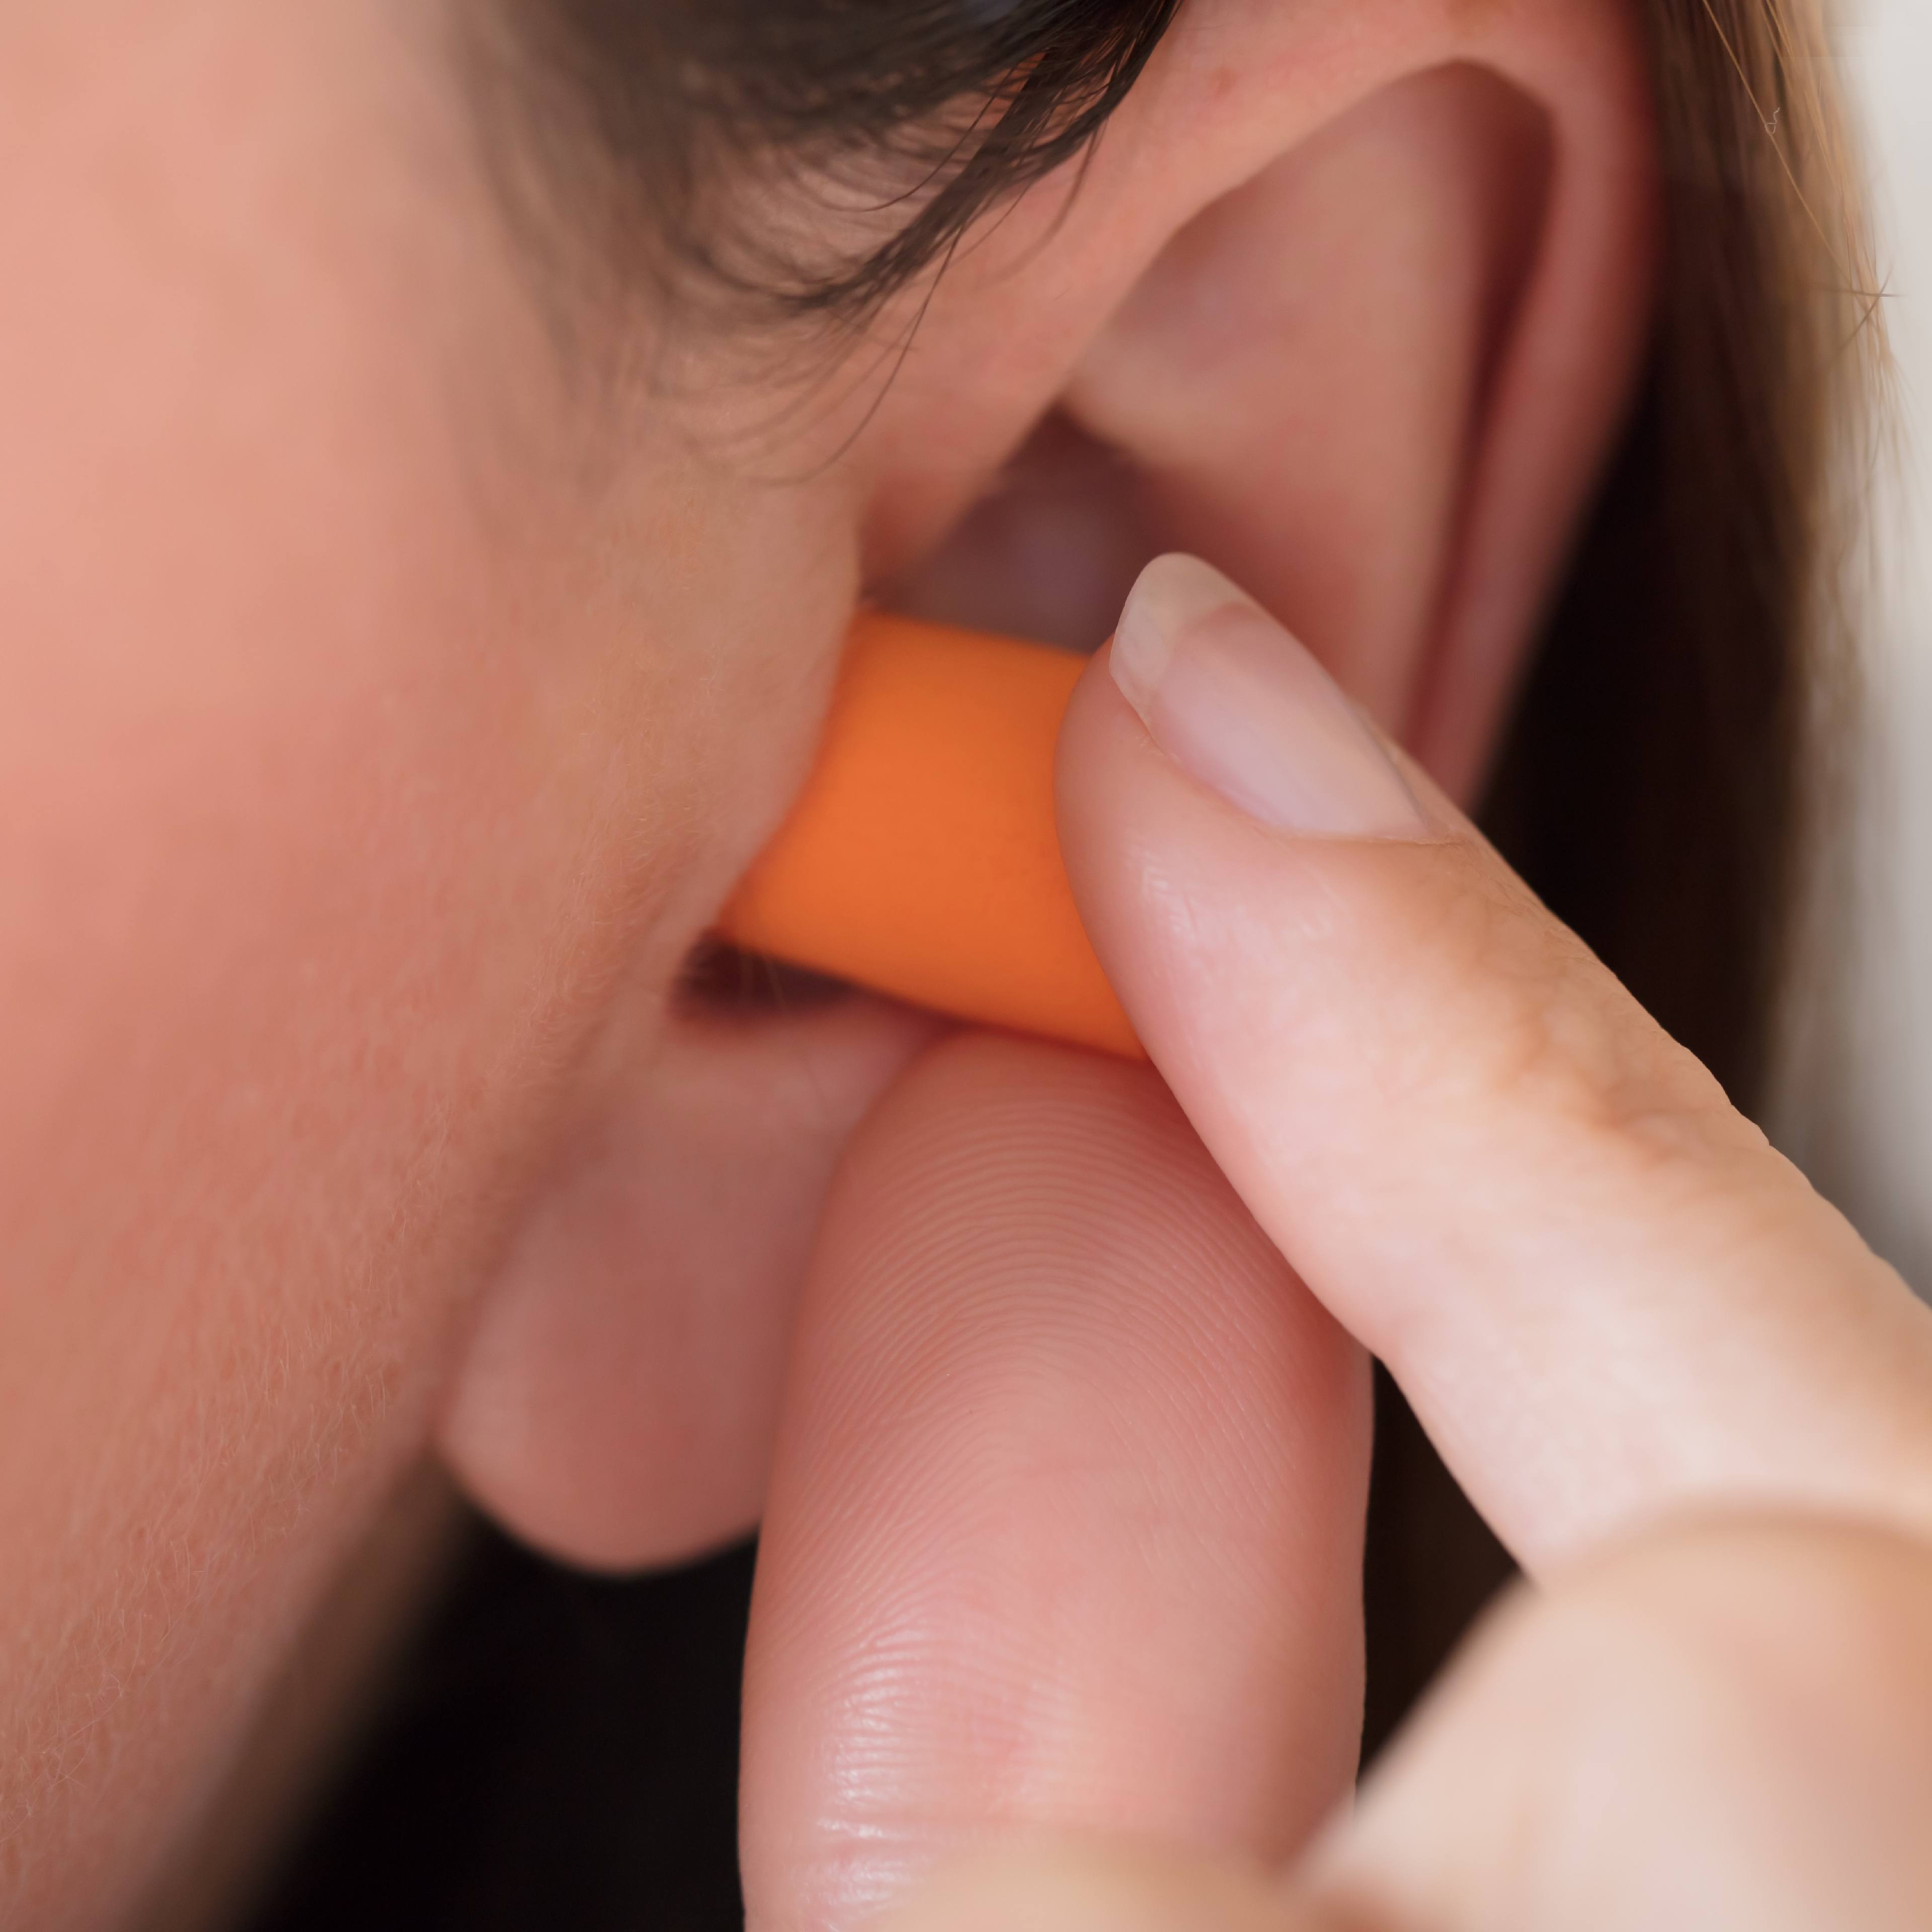 a young woman putting an earplug in her ear to help block out loud sounds and noises to protect her hearing.